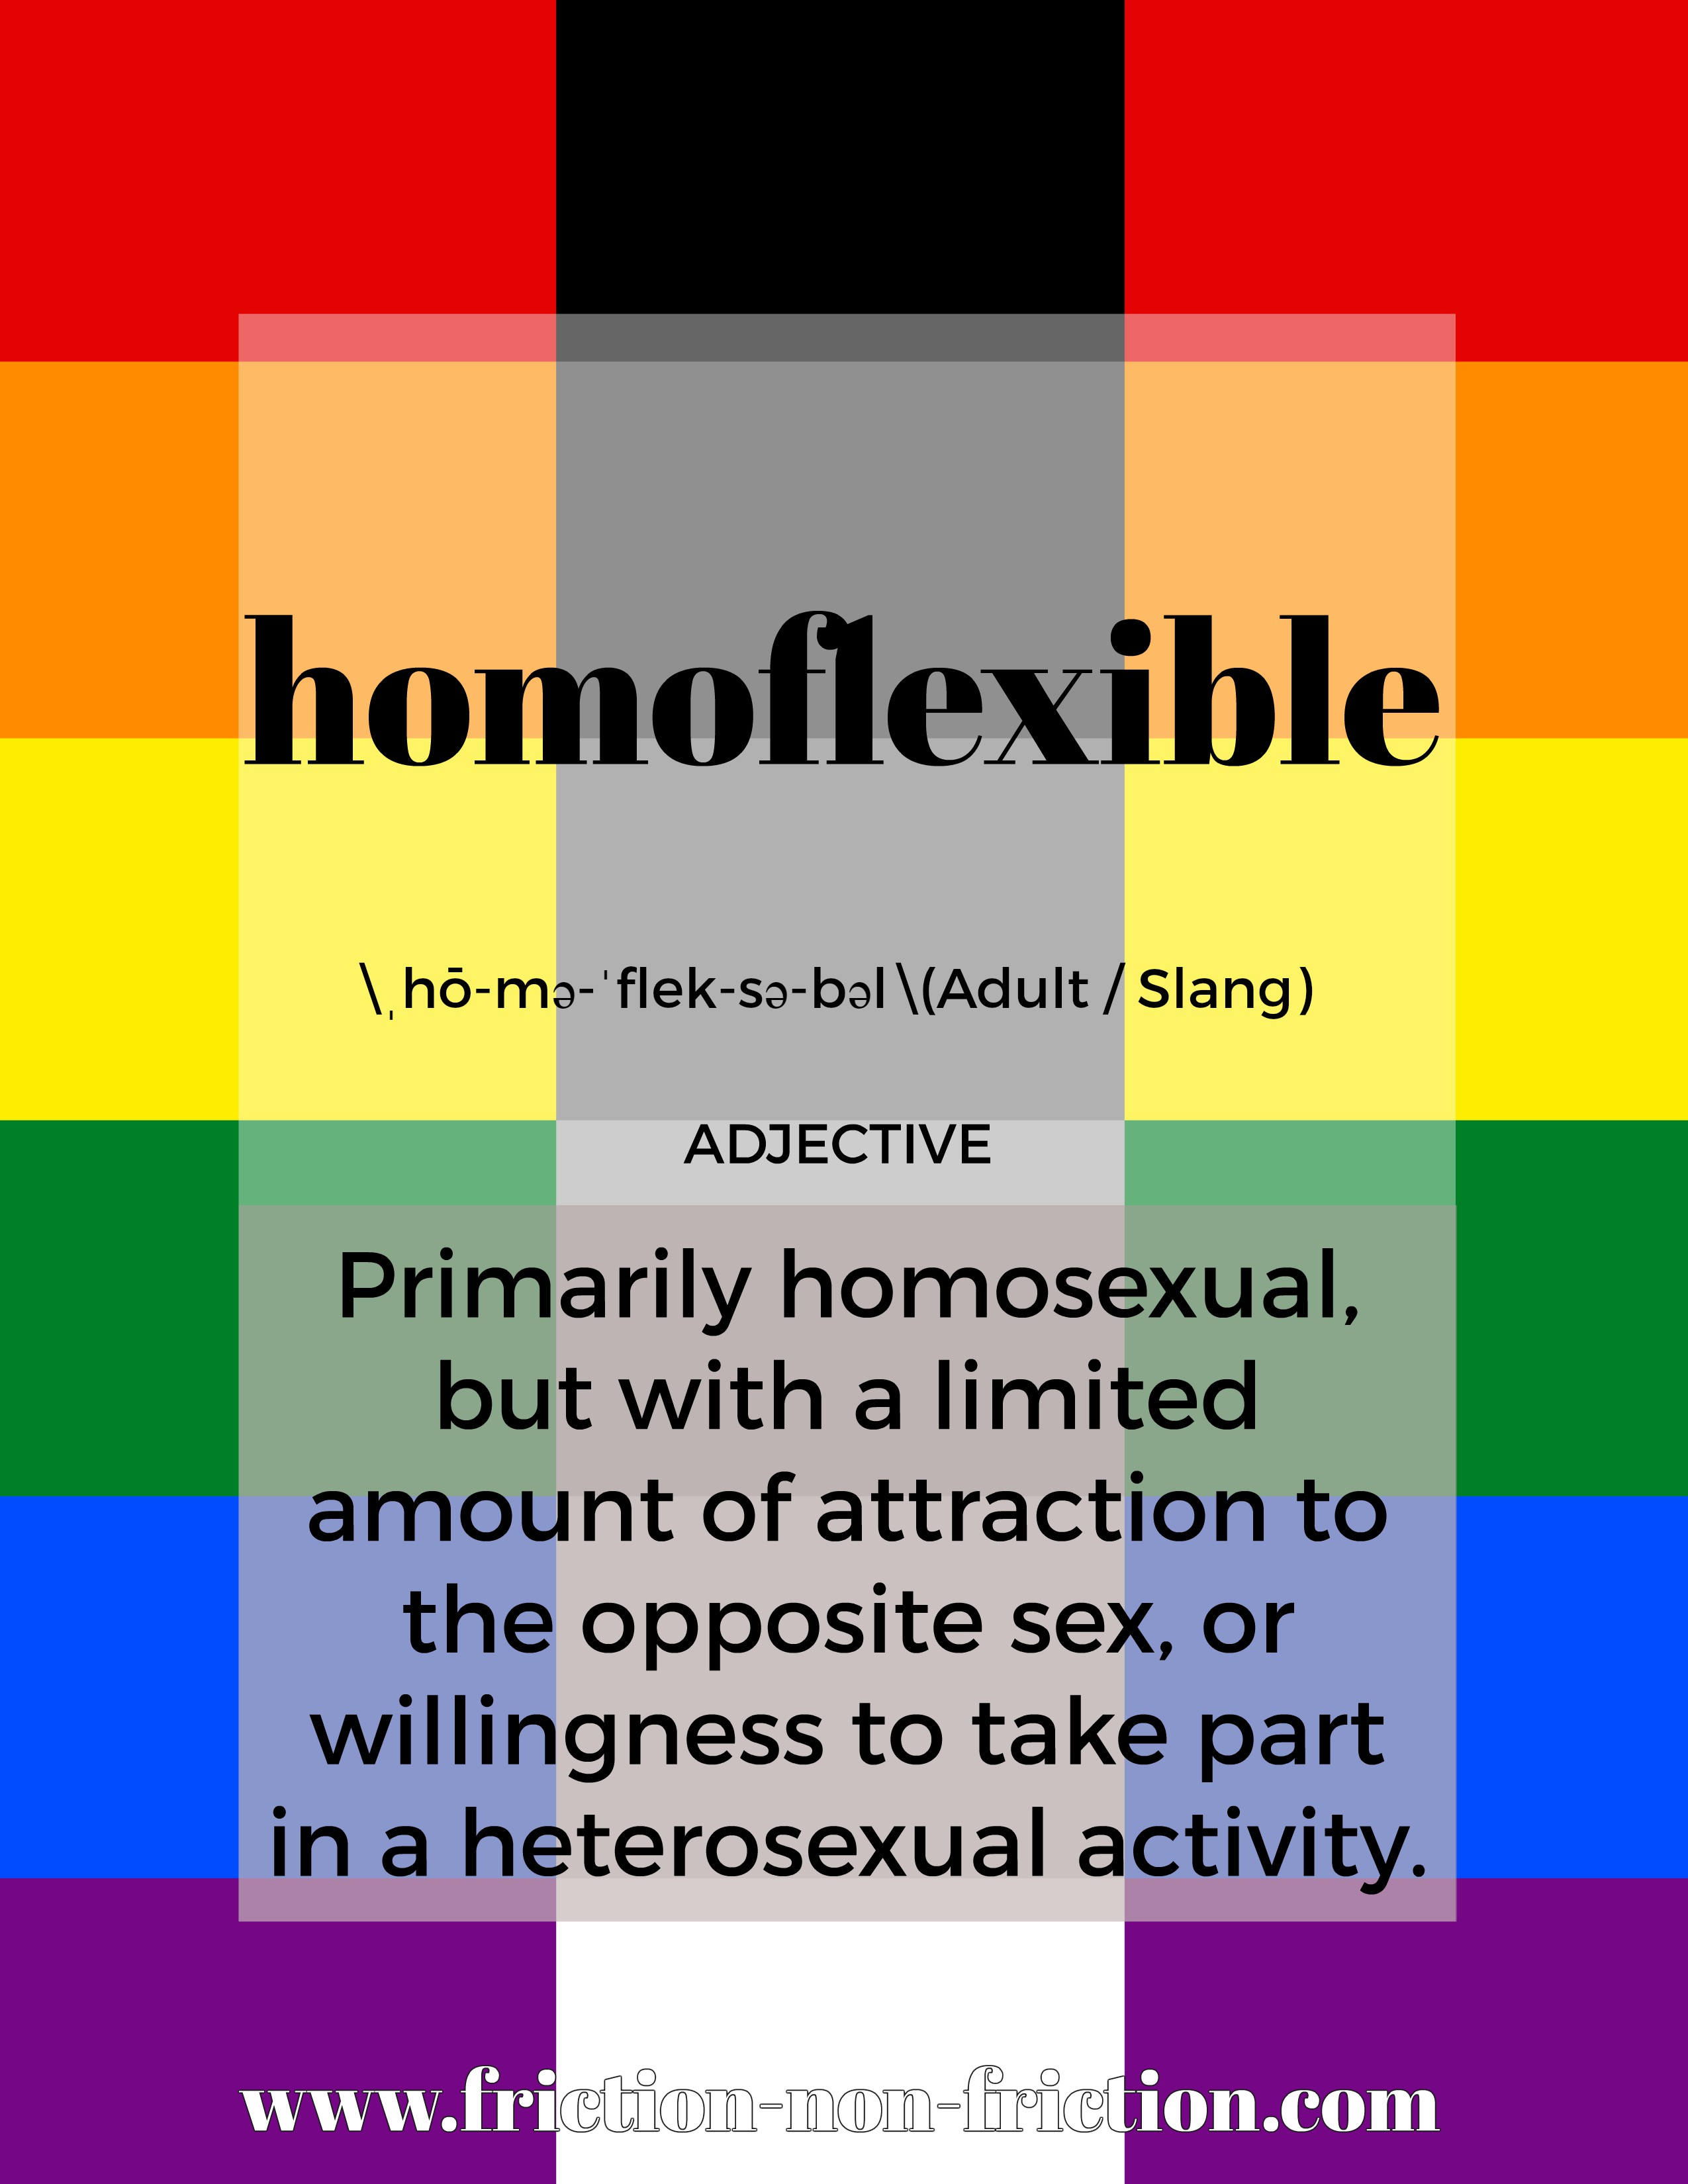 Homoflexible -- another great FRICTIONARY definition from Friction non Friction